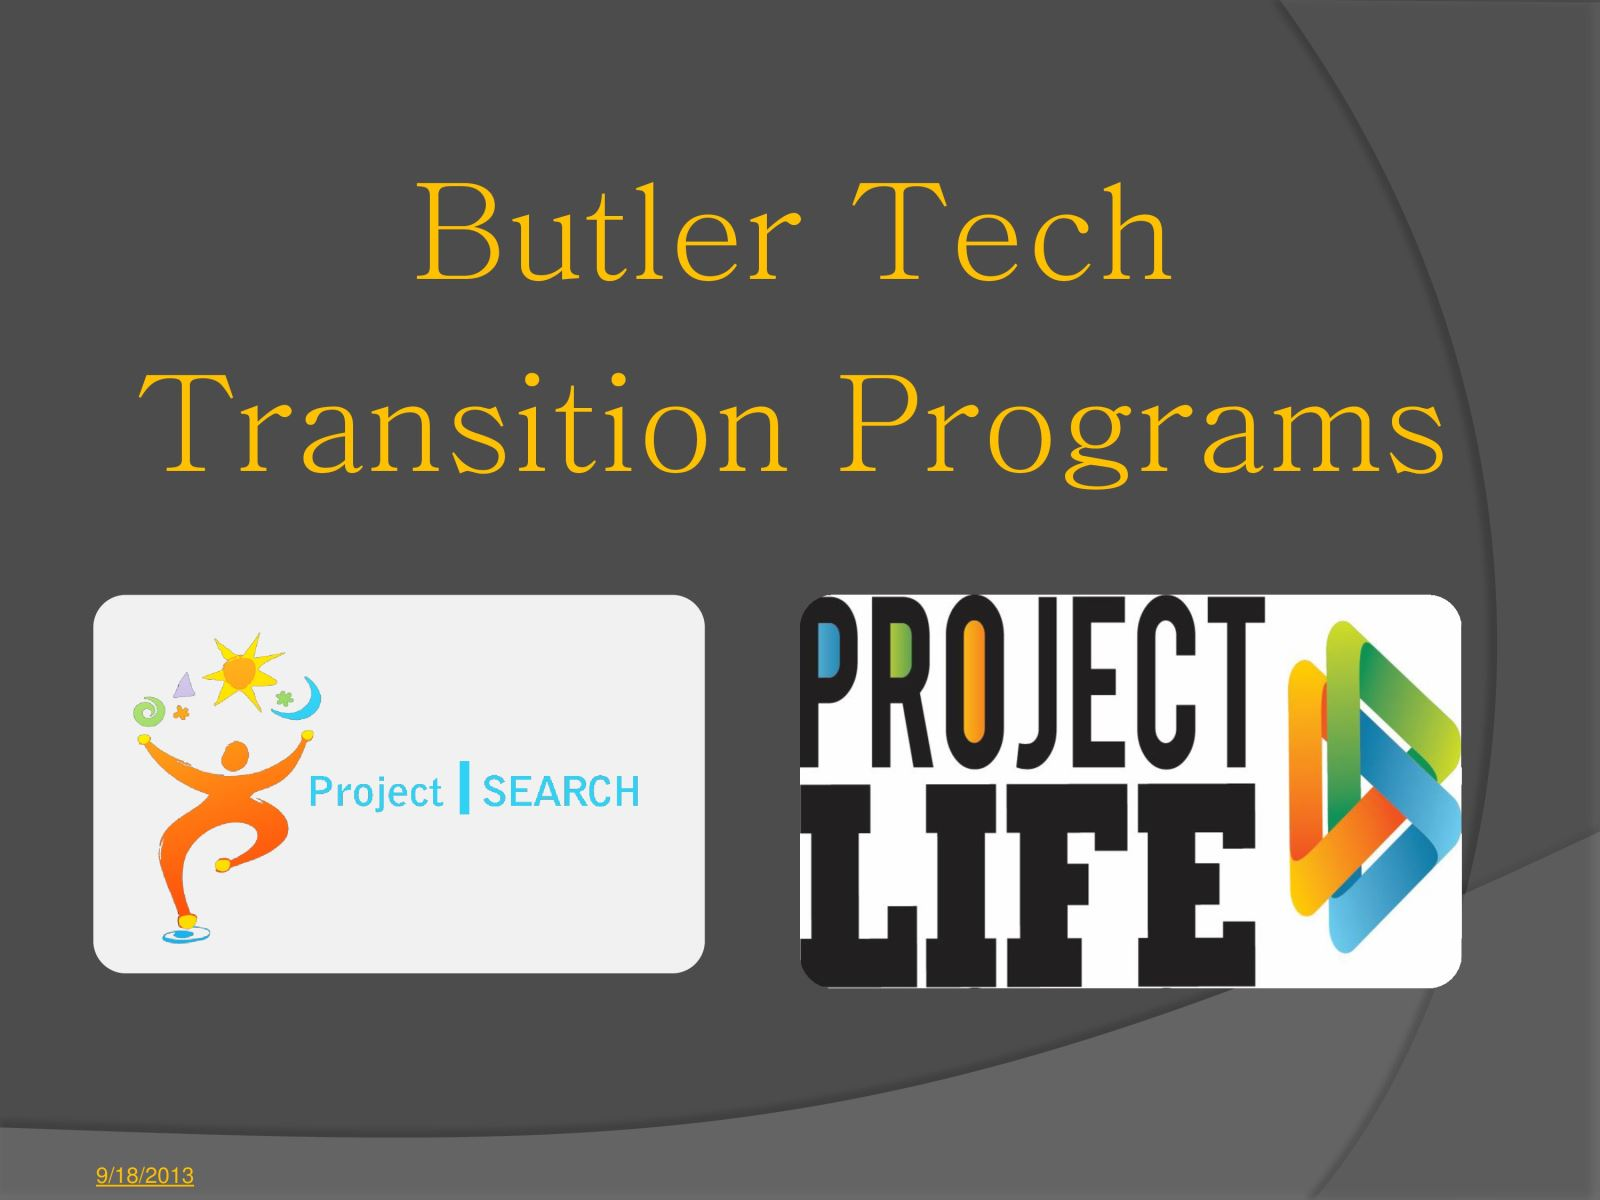 Butler Tech program icon